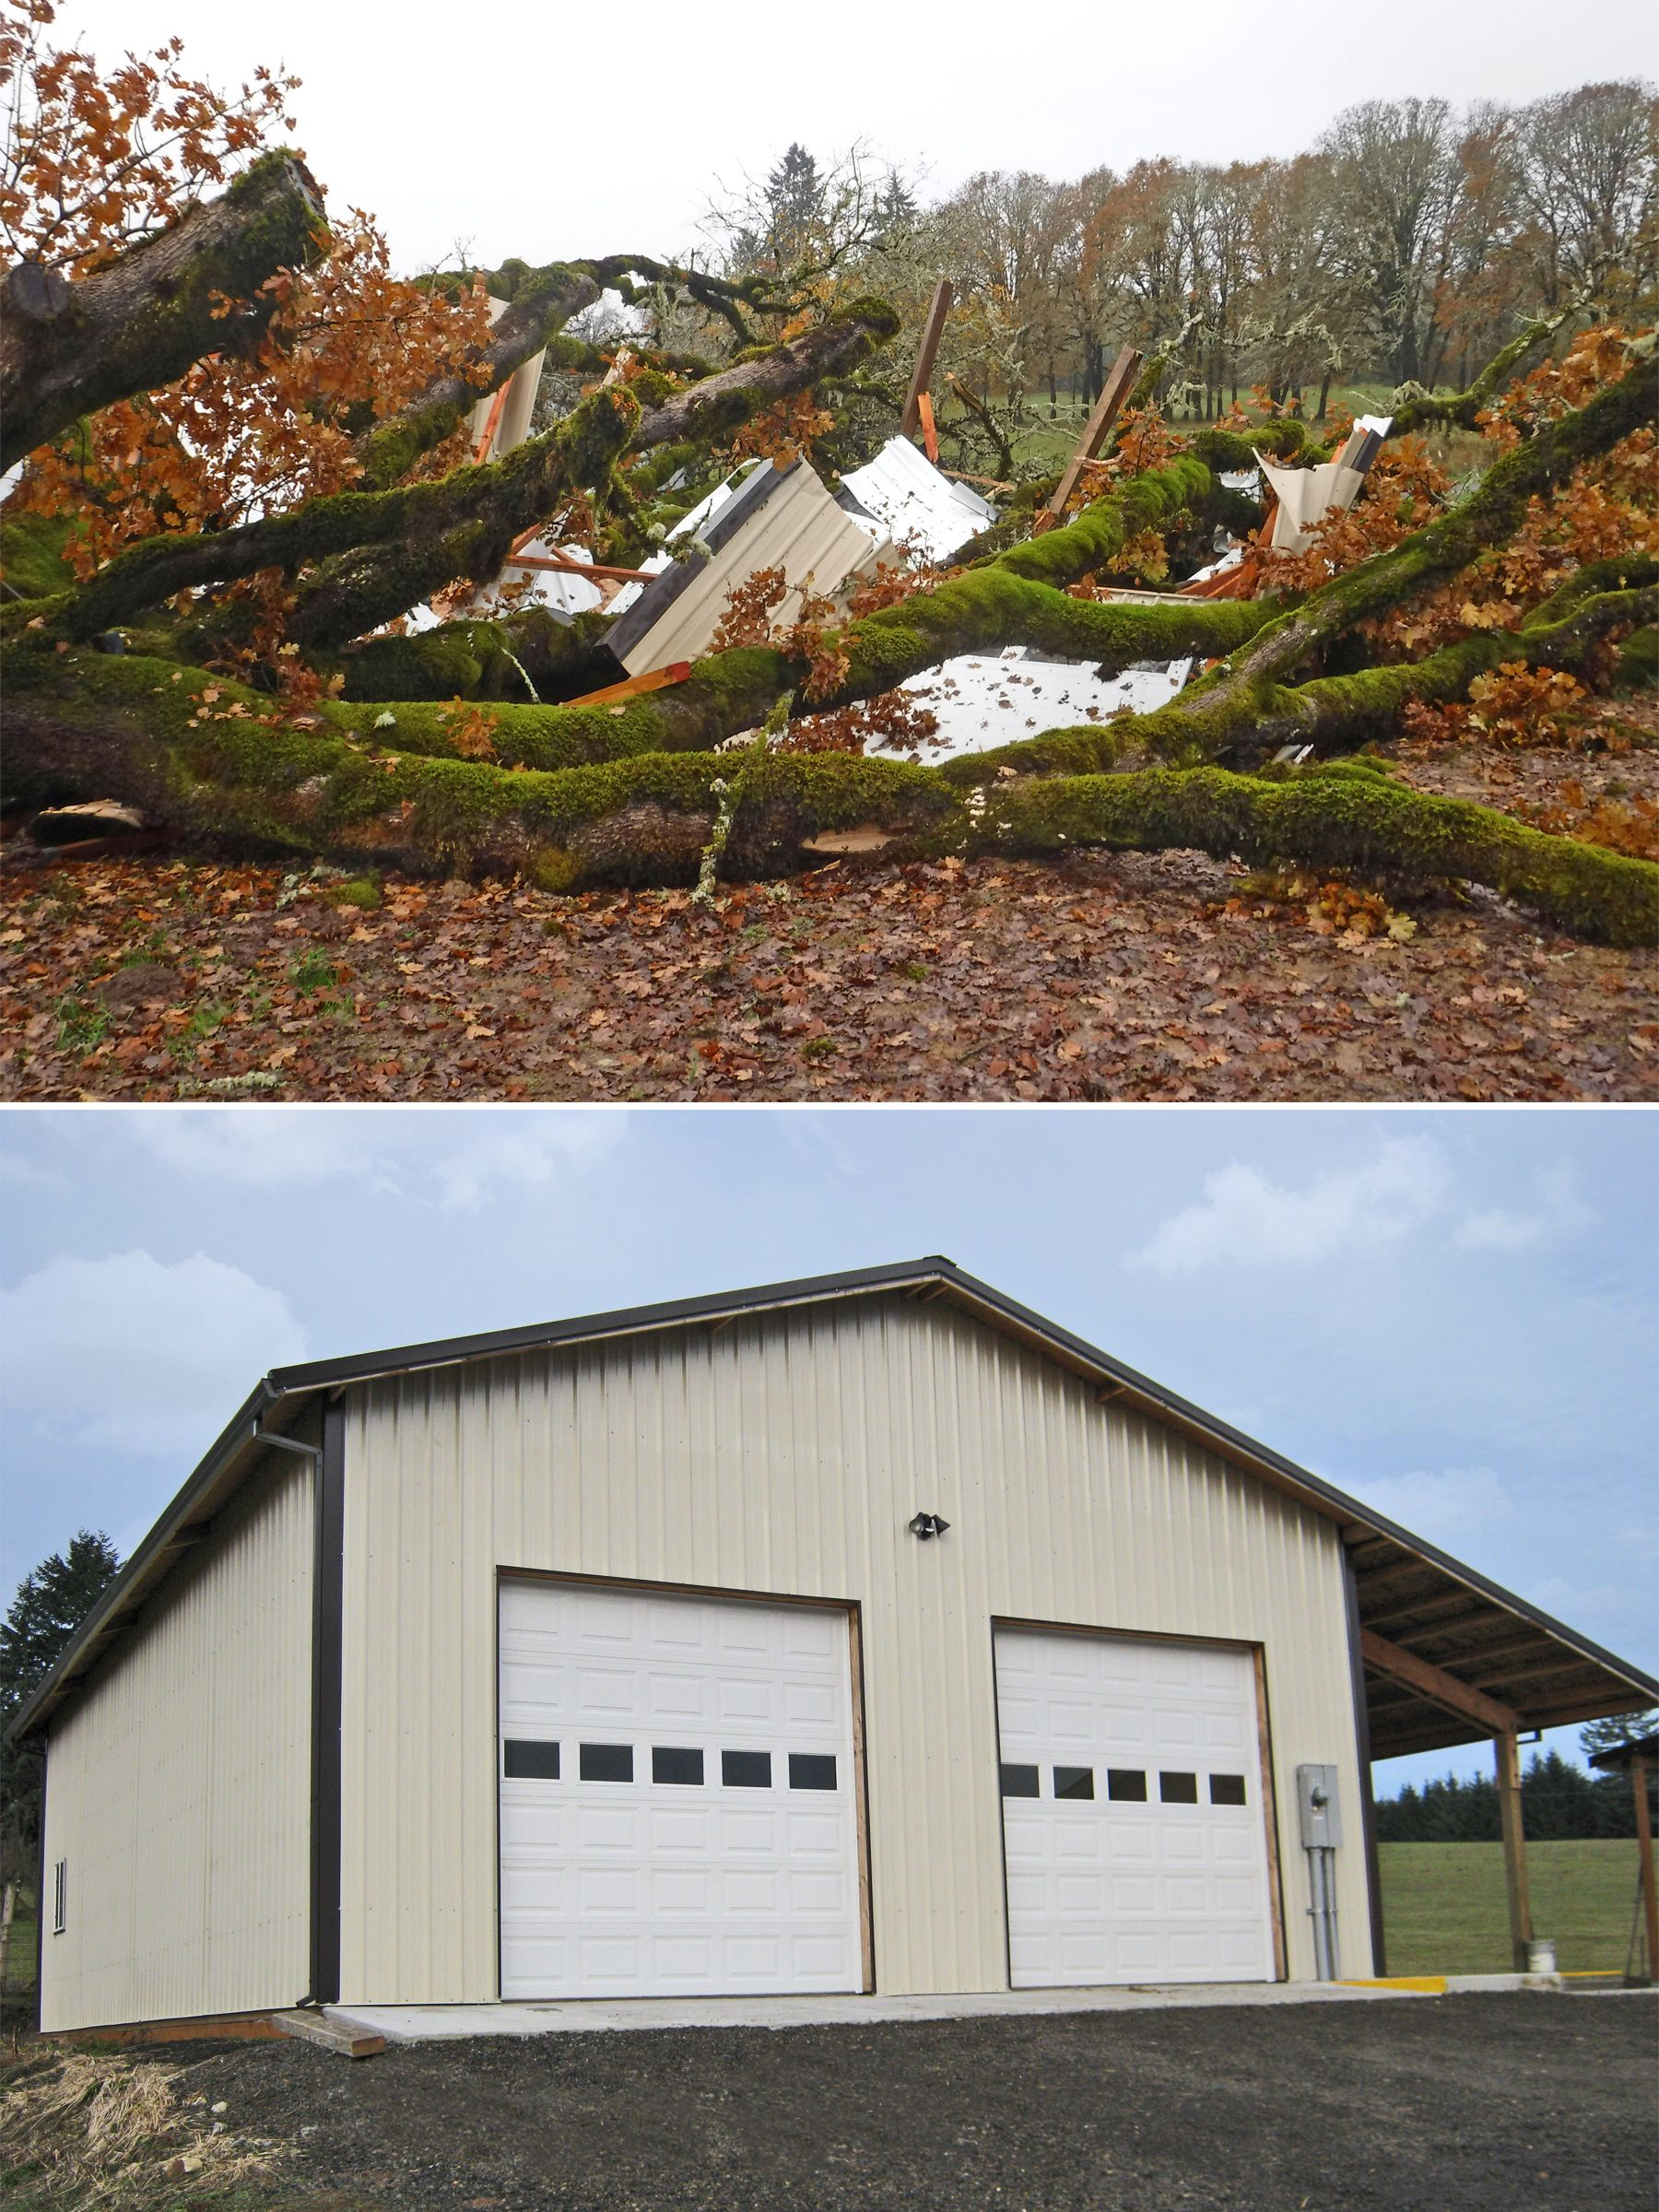 before and after shot of a 32 x 48 x 14 agricultural building that was destroyed by a falling tree www econofabbuildings com [ 1800 x 2400 Pixel ]